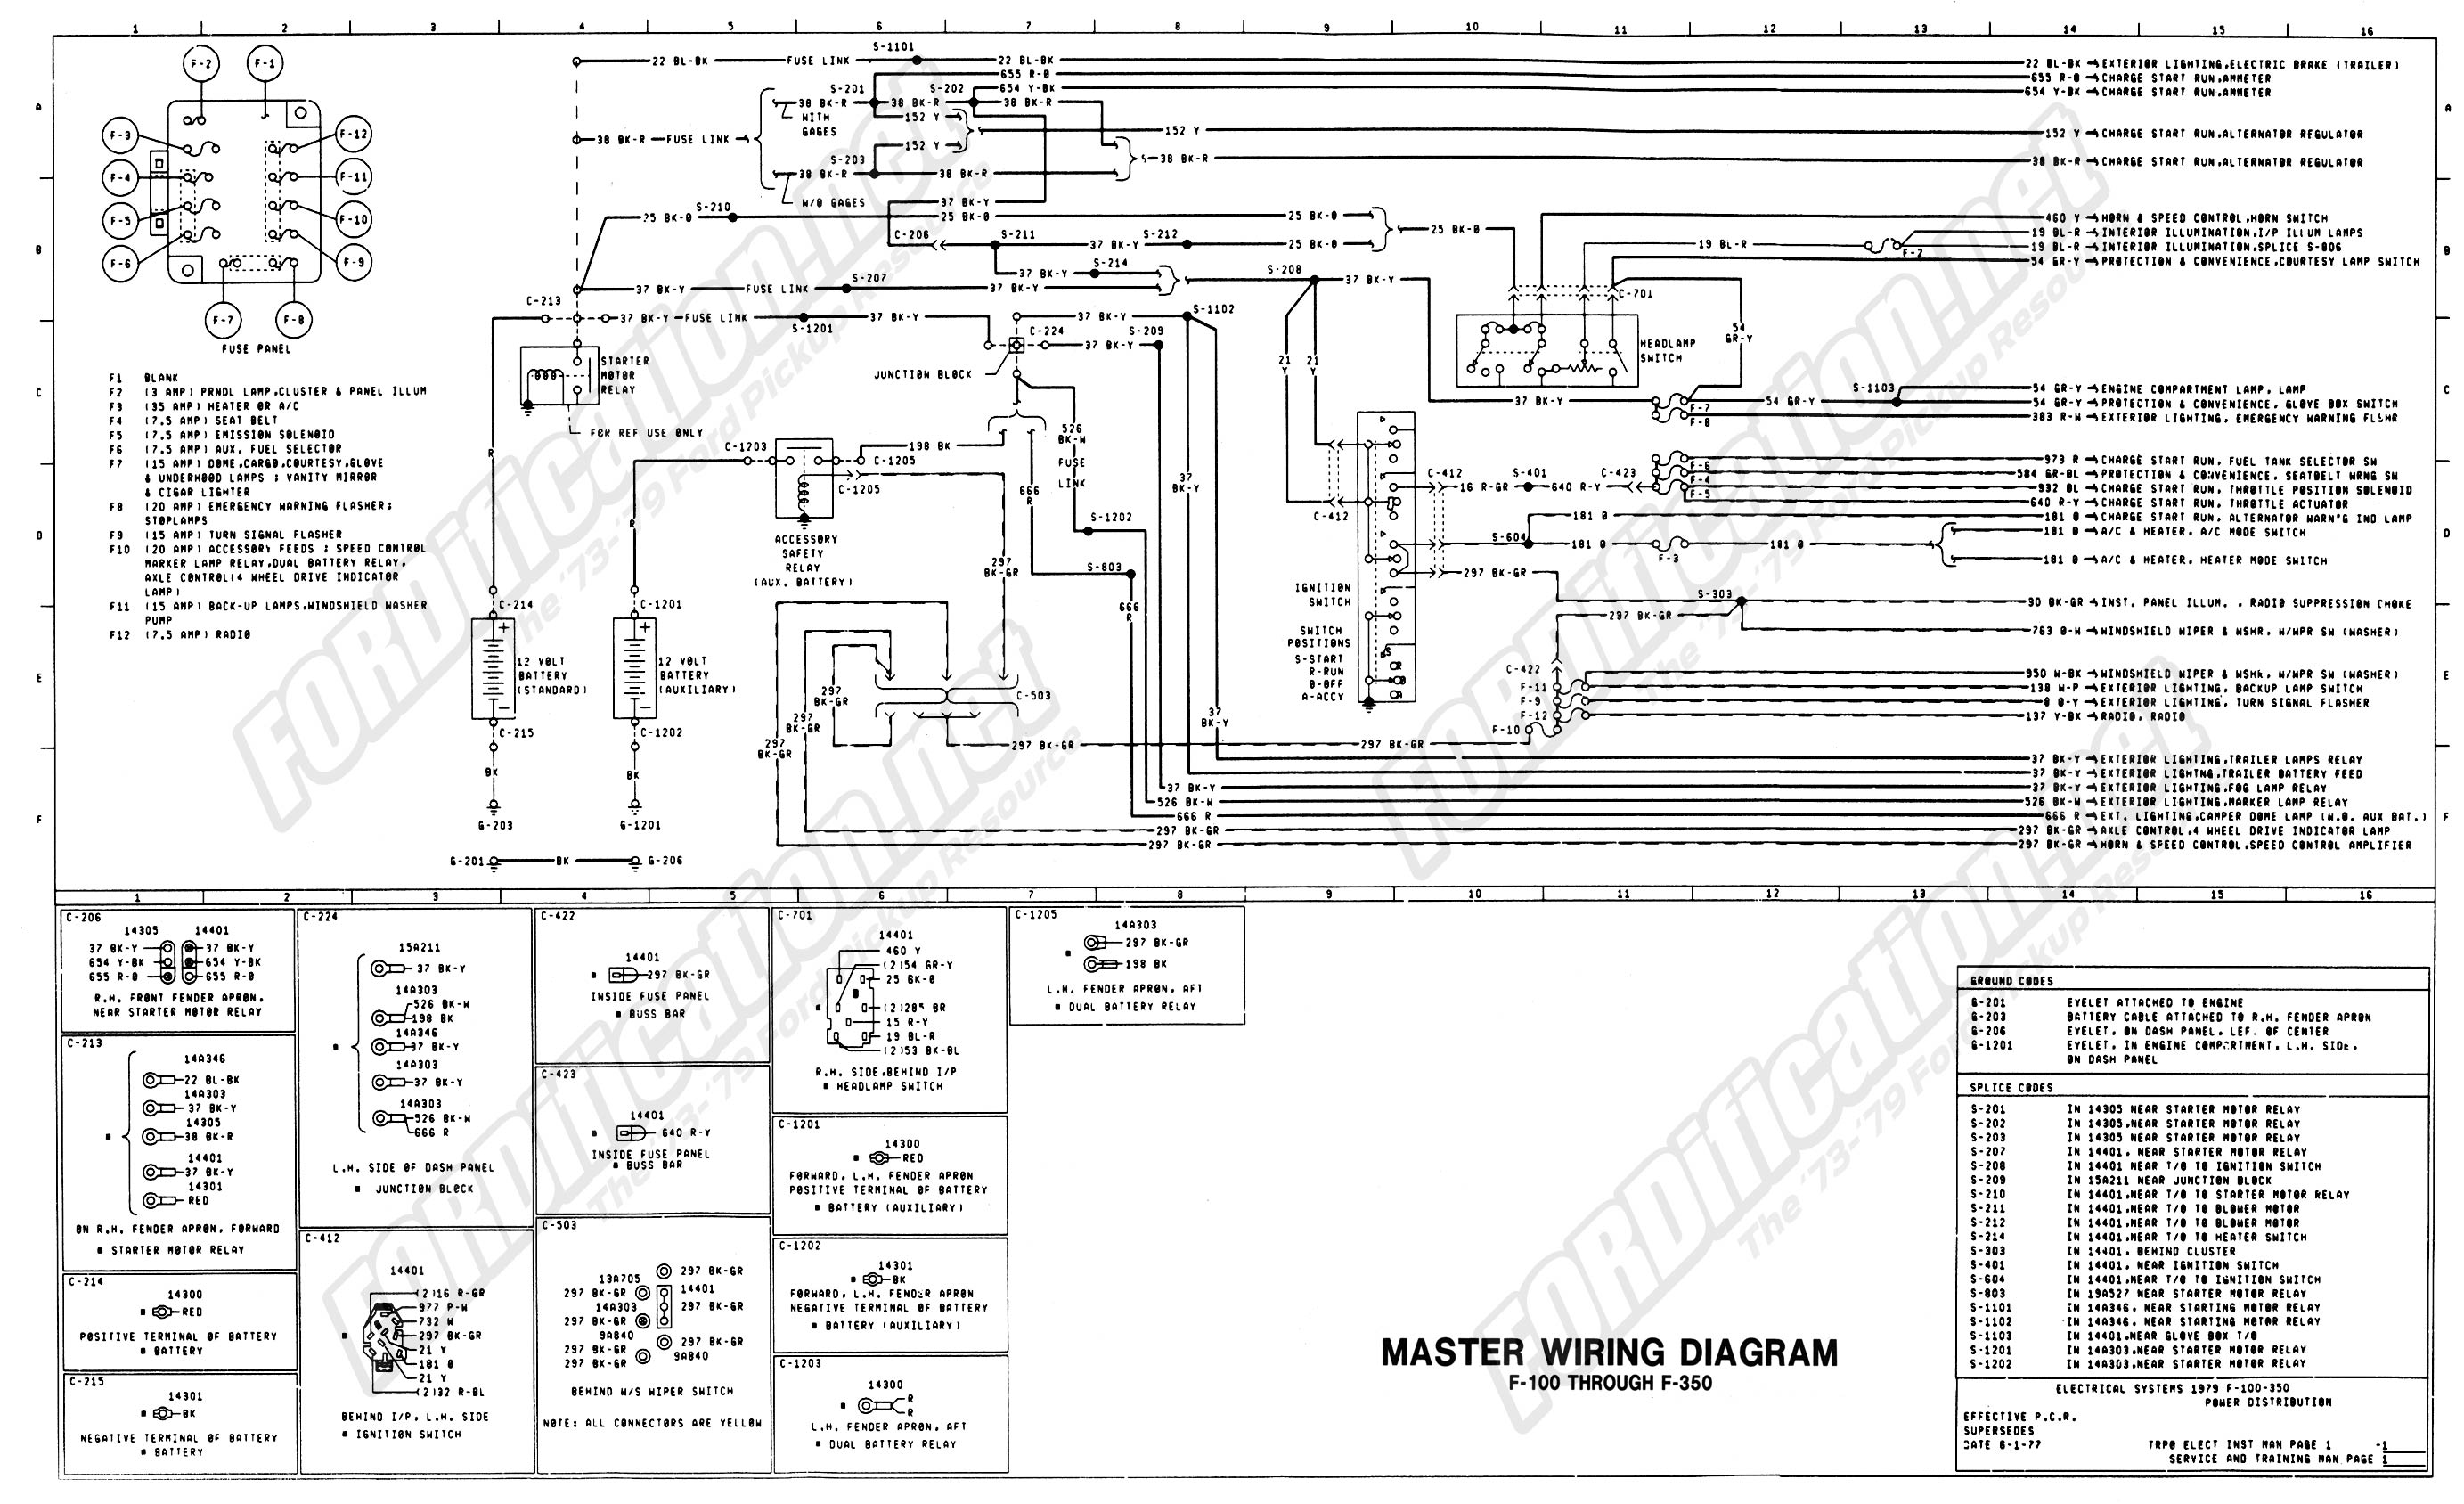 wiring_79master_1of9 1973 1979 ford truck wiring diagrams & schematics fordification net wiring diagram on a 1977 ford f100 radio at readyjetset.co